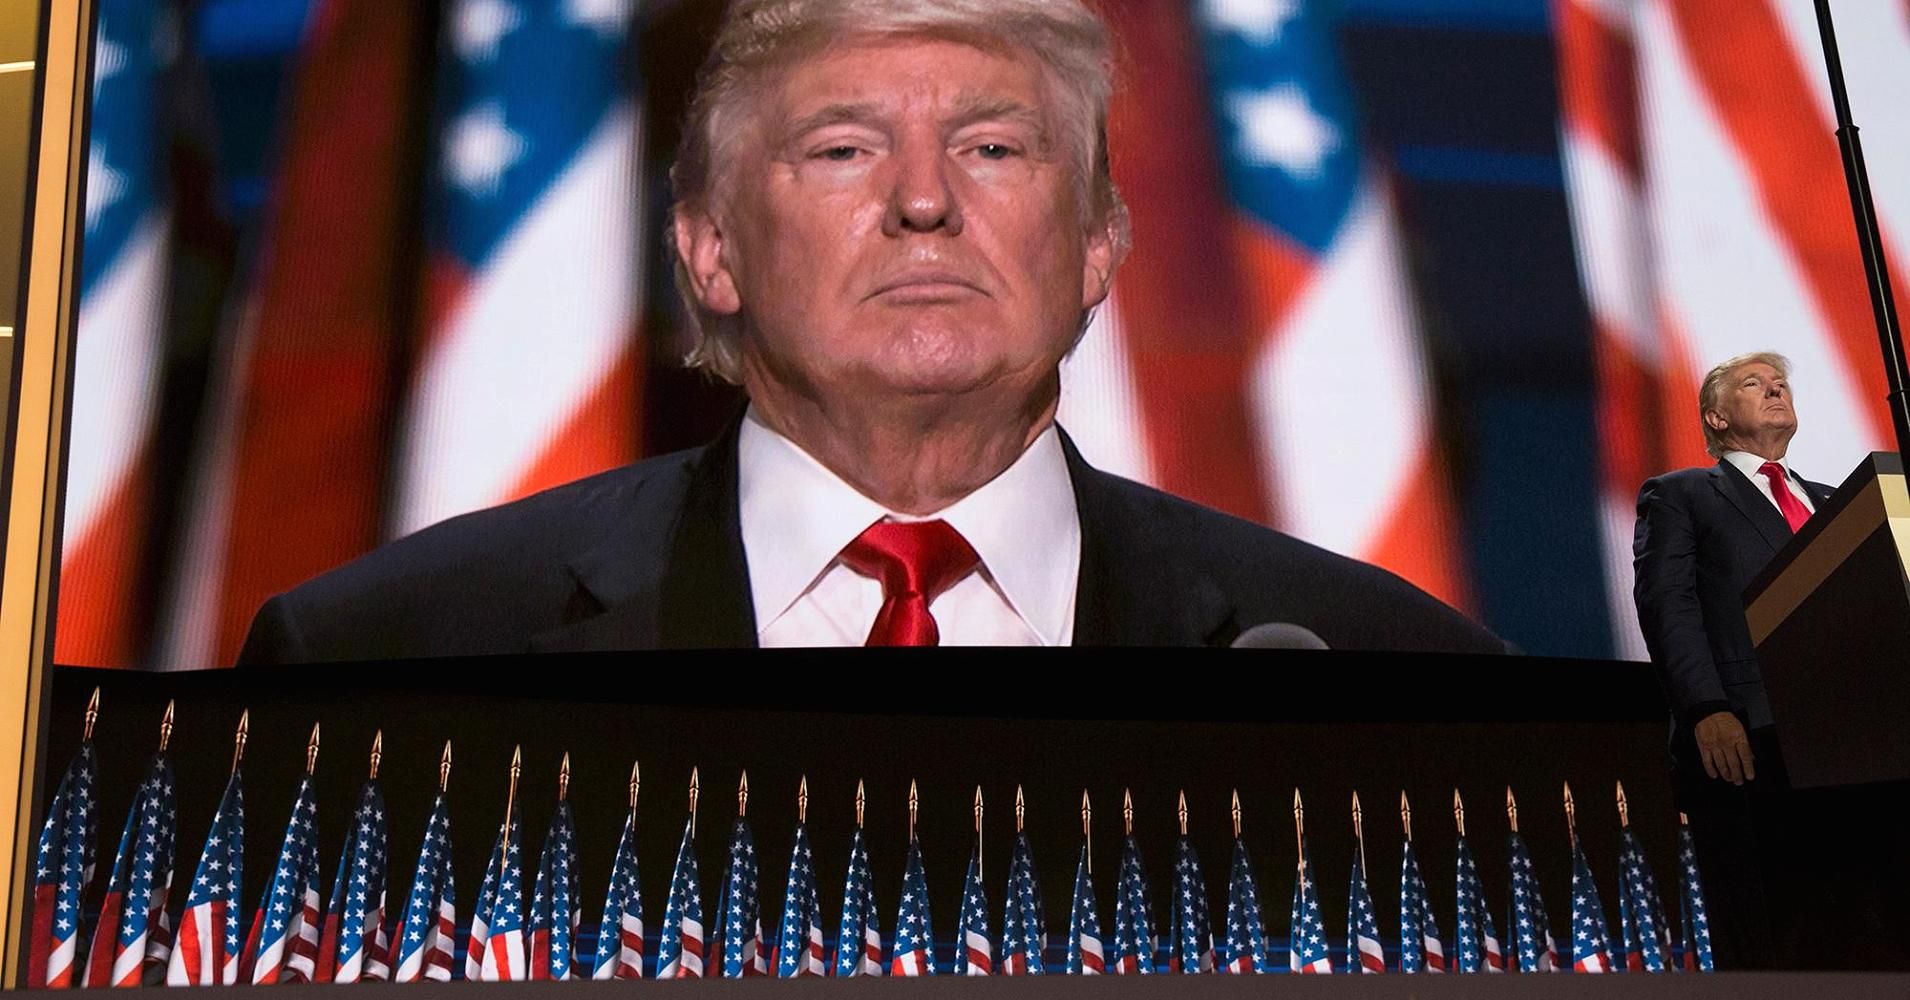 a rhetorical analysis of donald trumps republican national convention speech Political speeches are full of literary / rhetorical devices and donald trump's speech was no exception although my analysis primarily reviews specific devices like anaphora, it also considers.